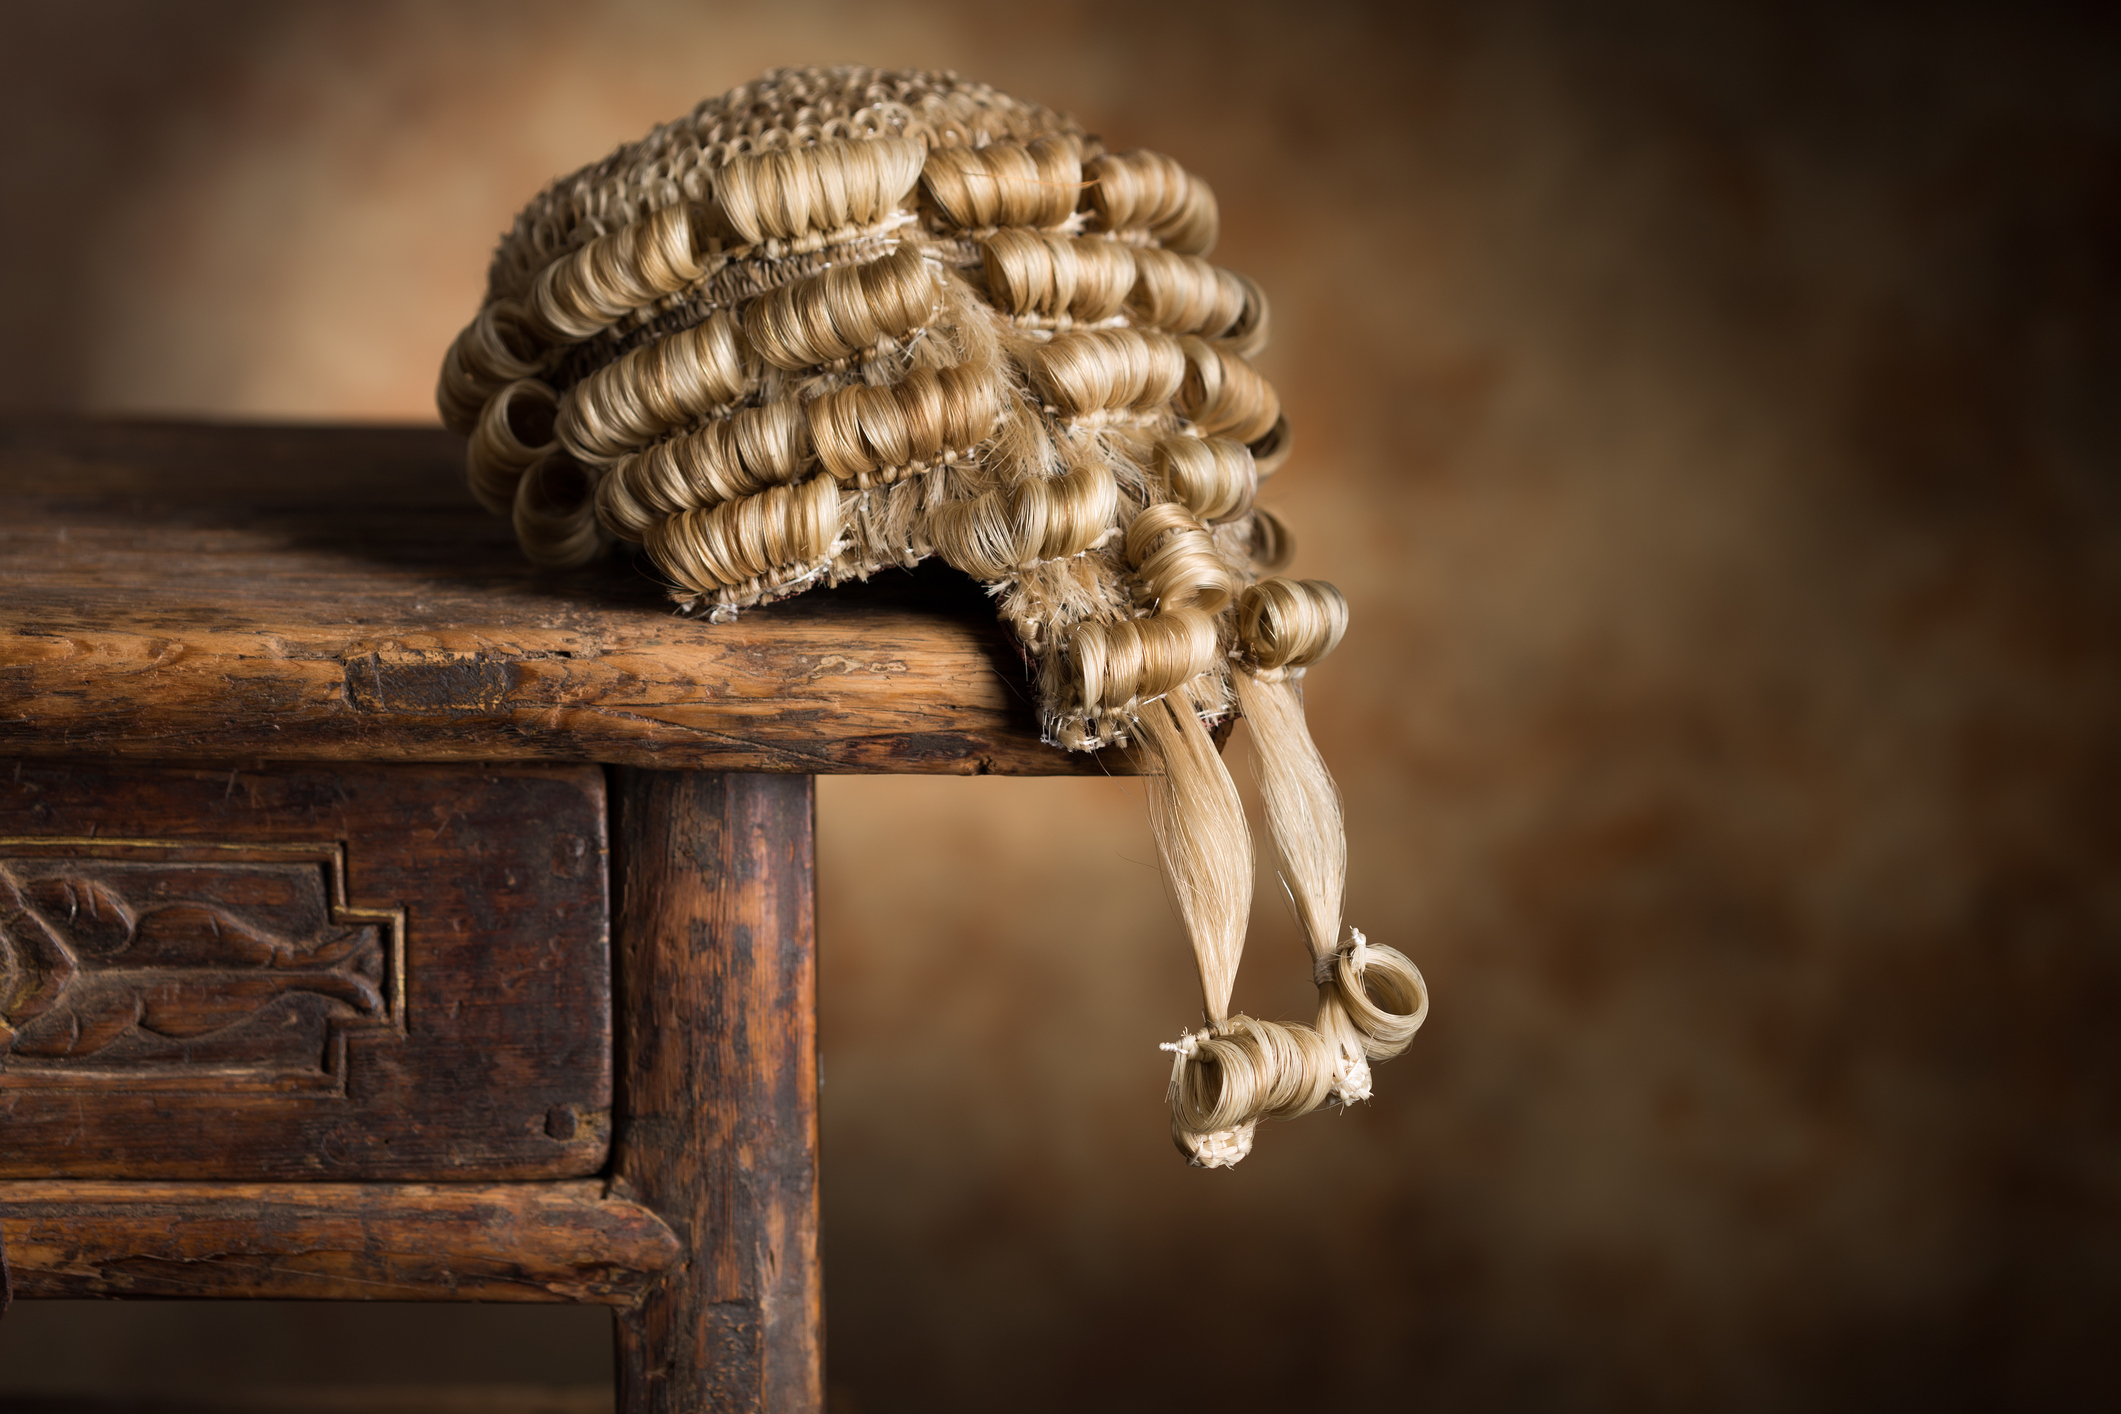 barristers' wigs